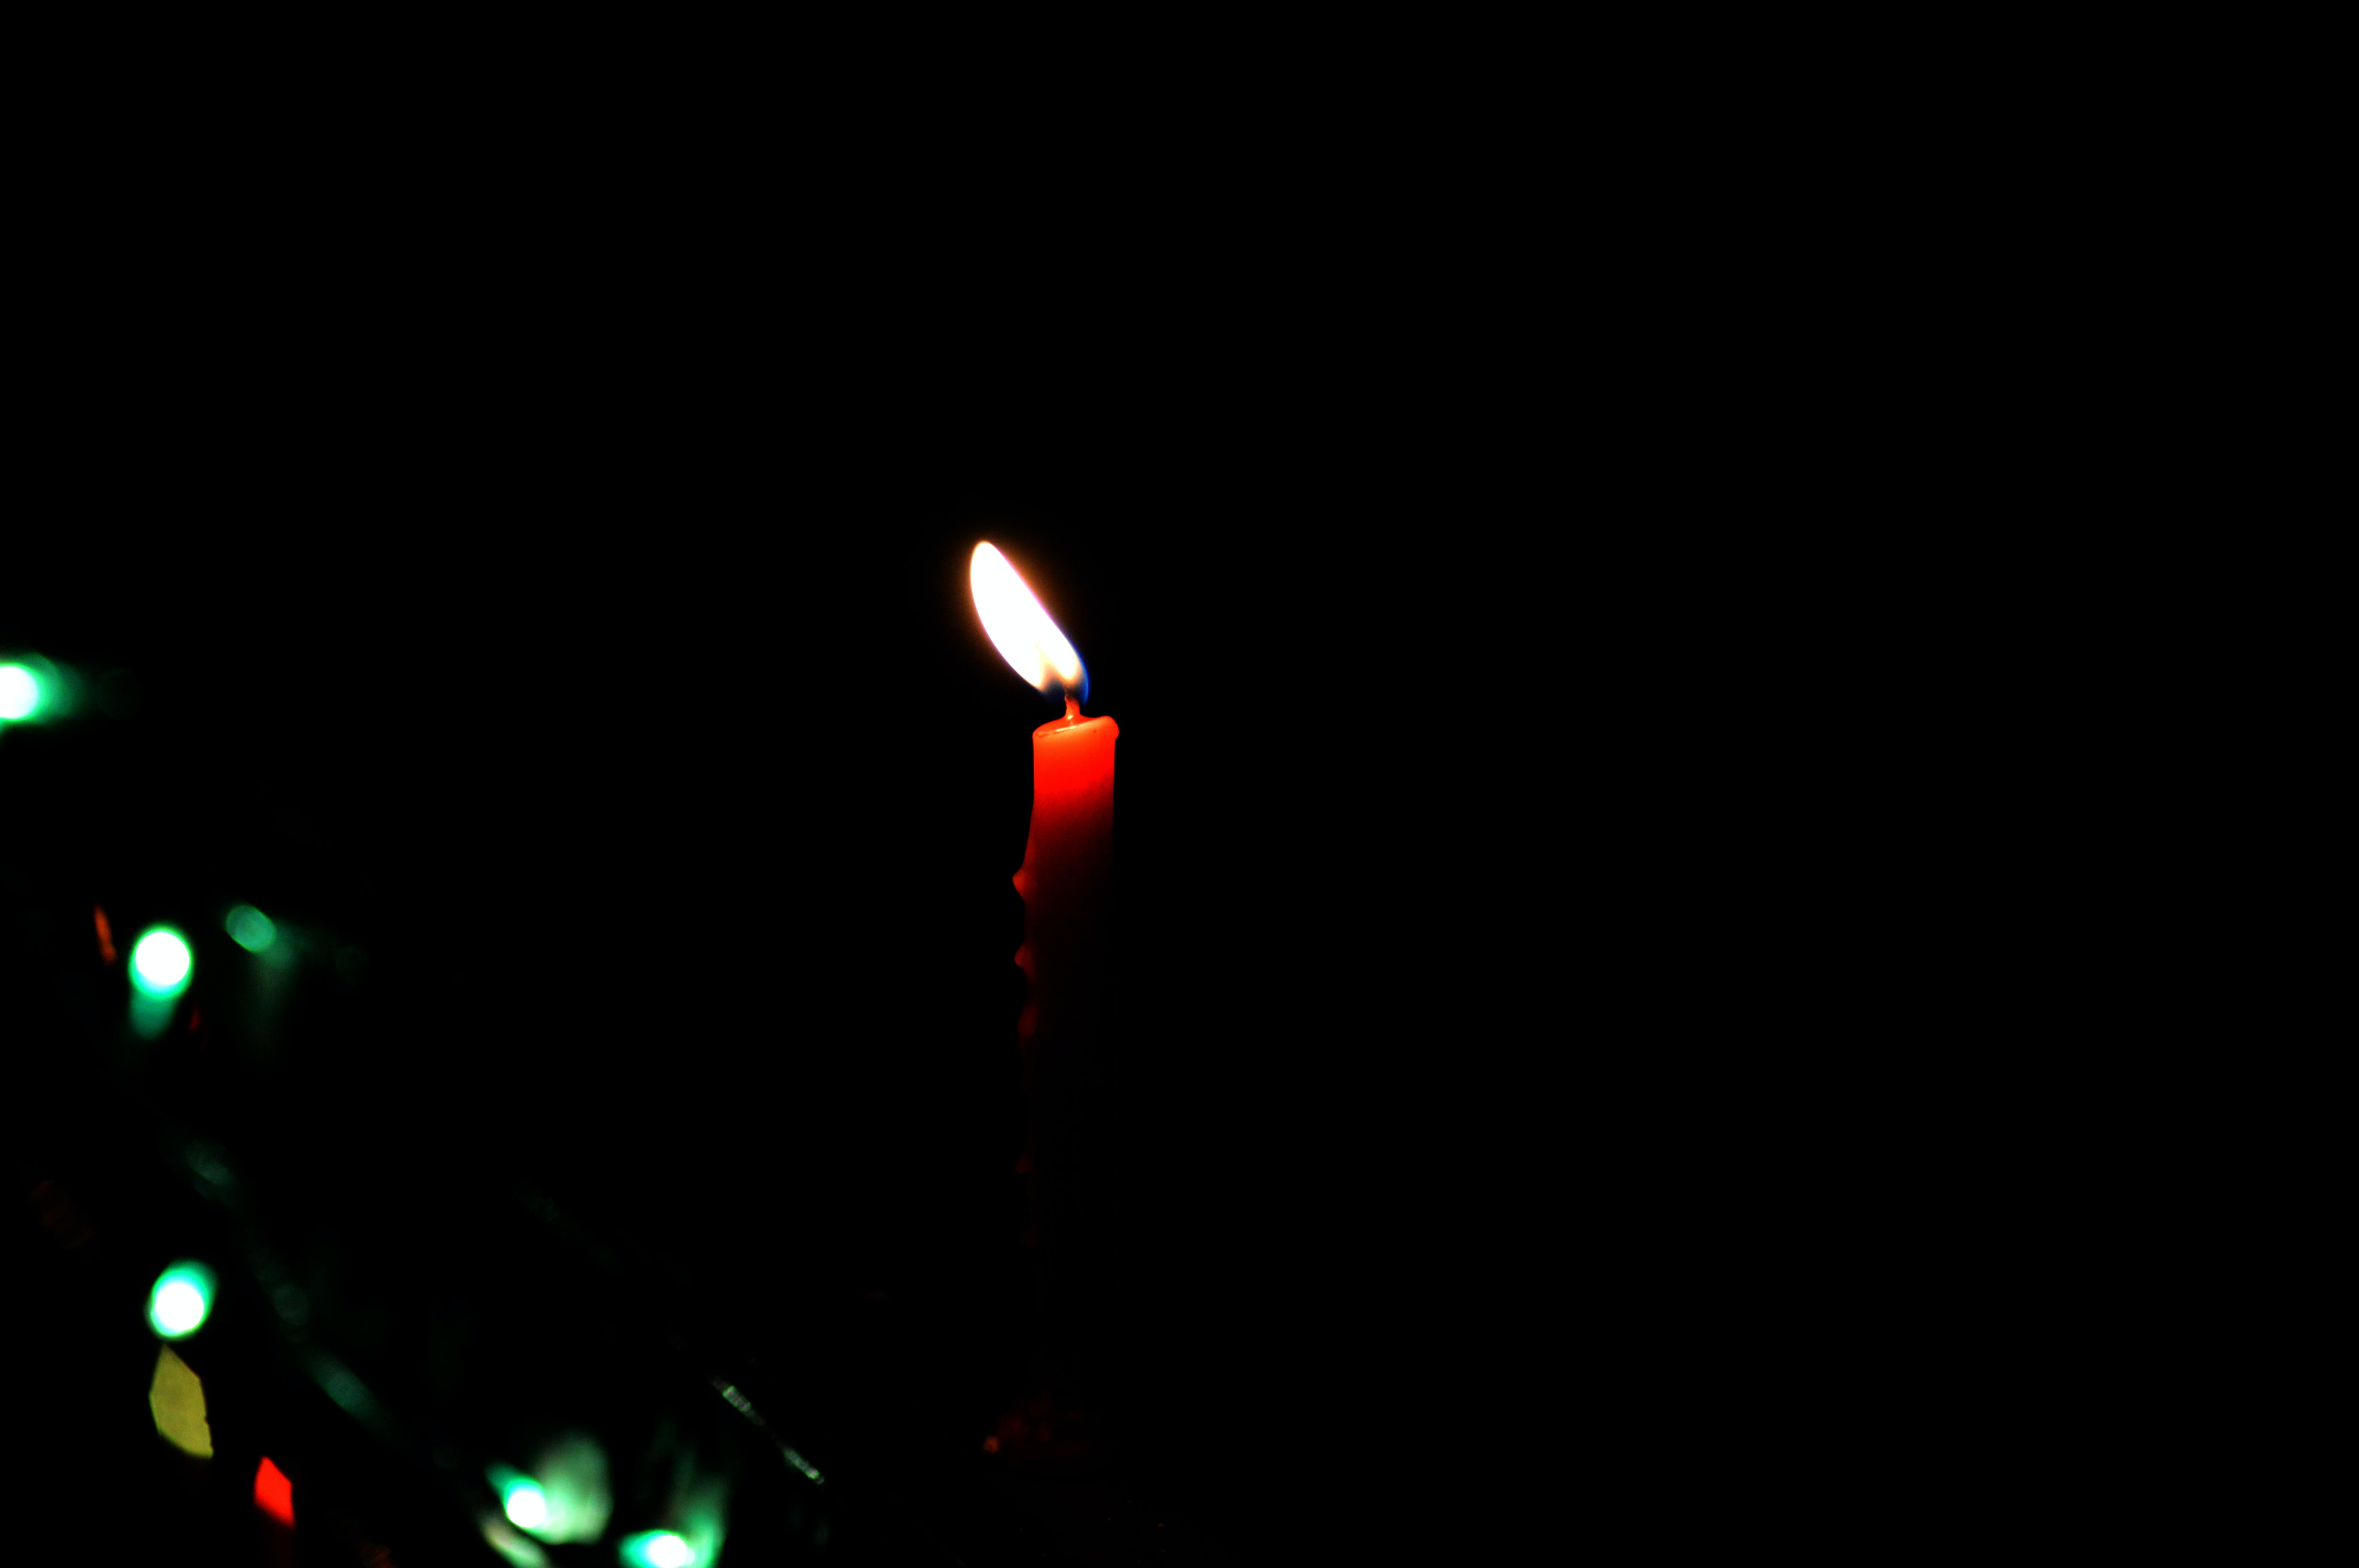 Close-Up Photography of Red Candle